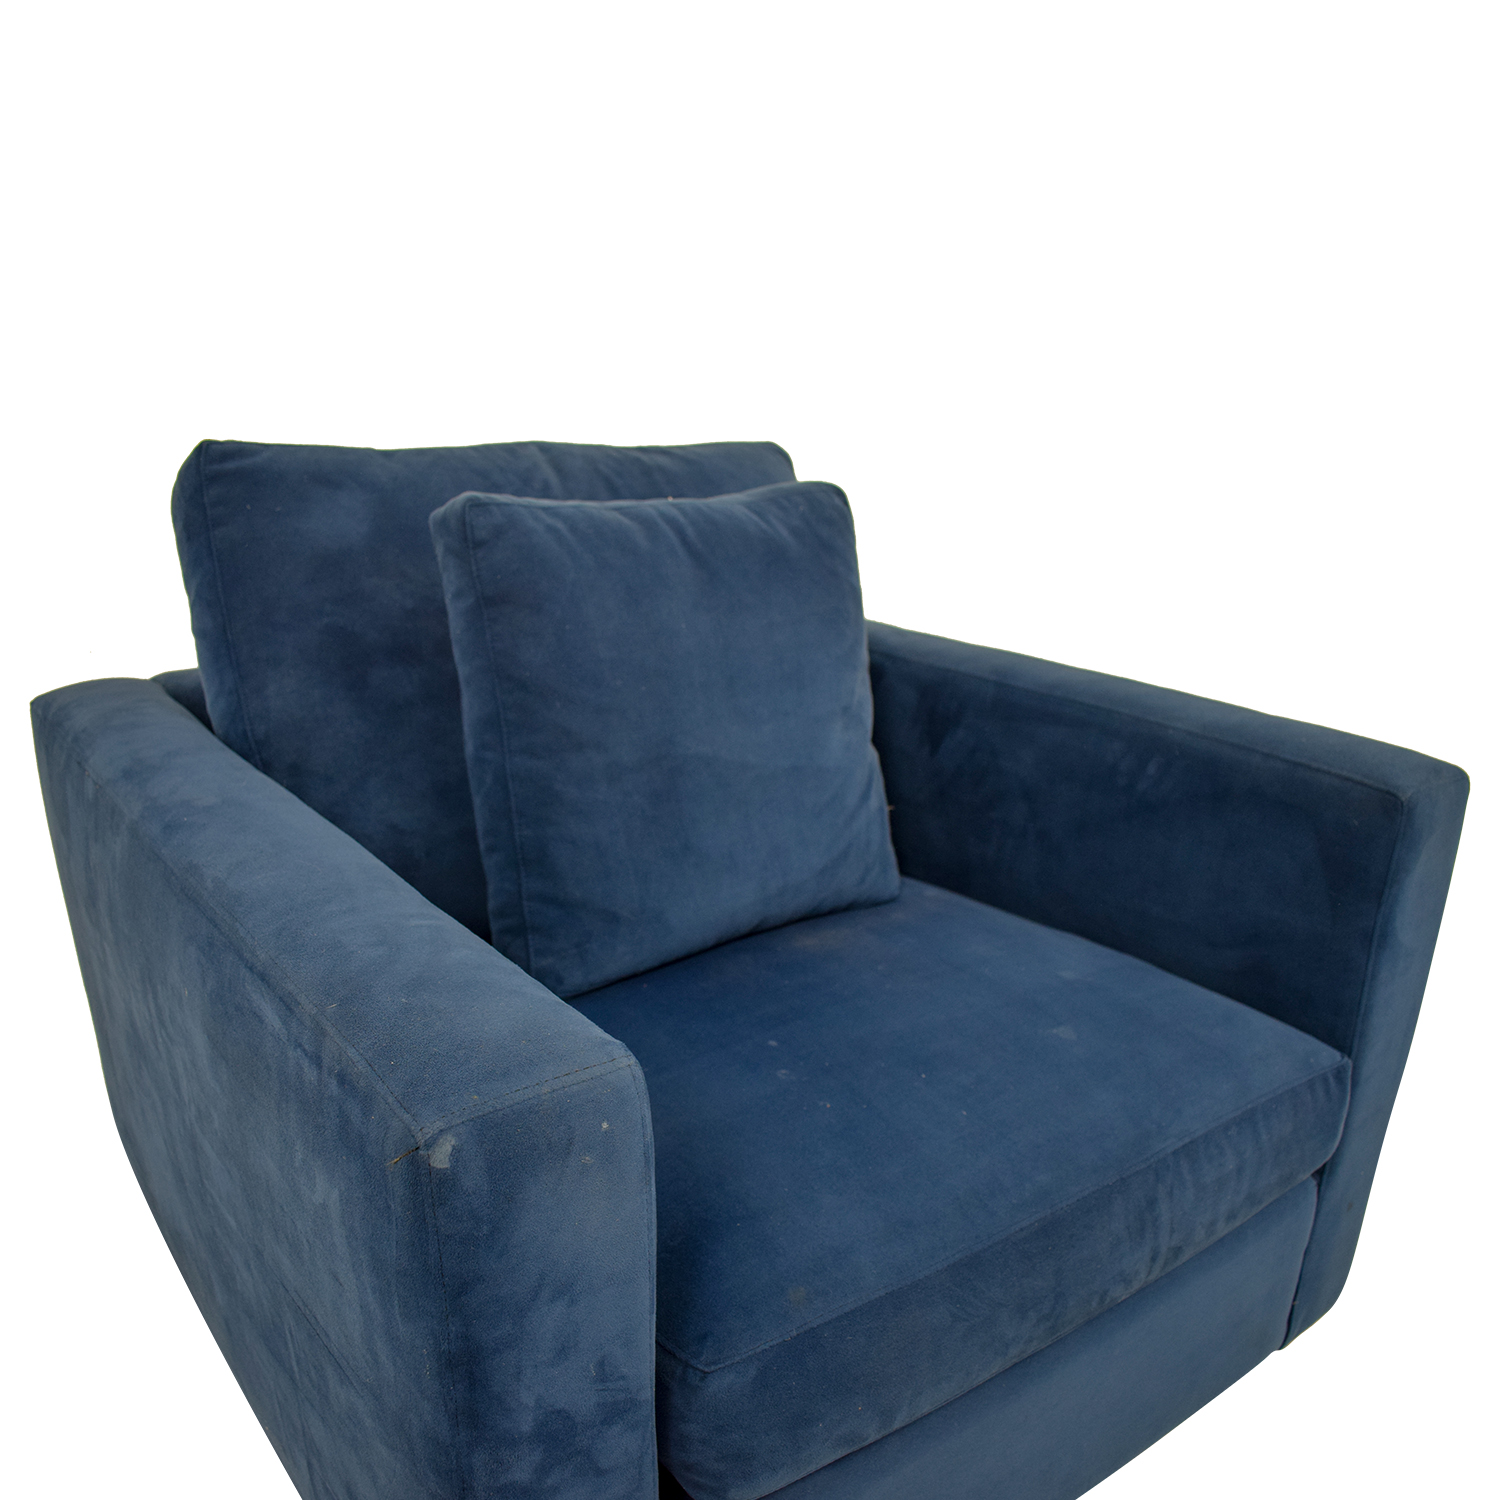 Blue Arm Chair with Toss Pillow / Chairs